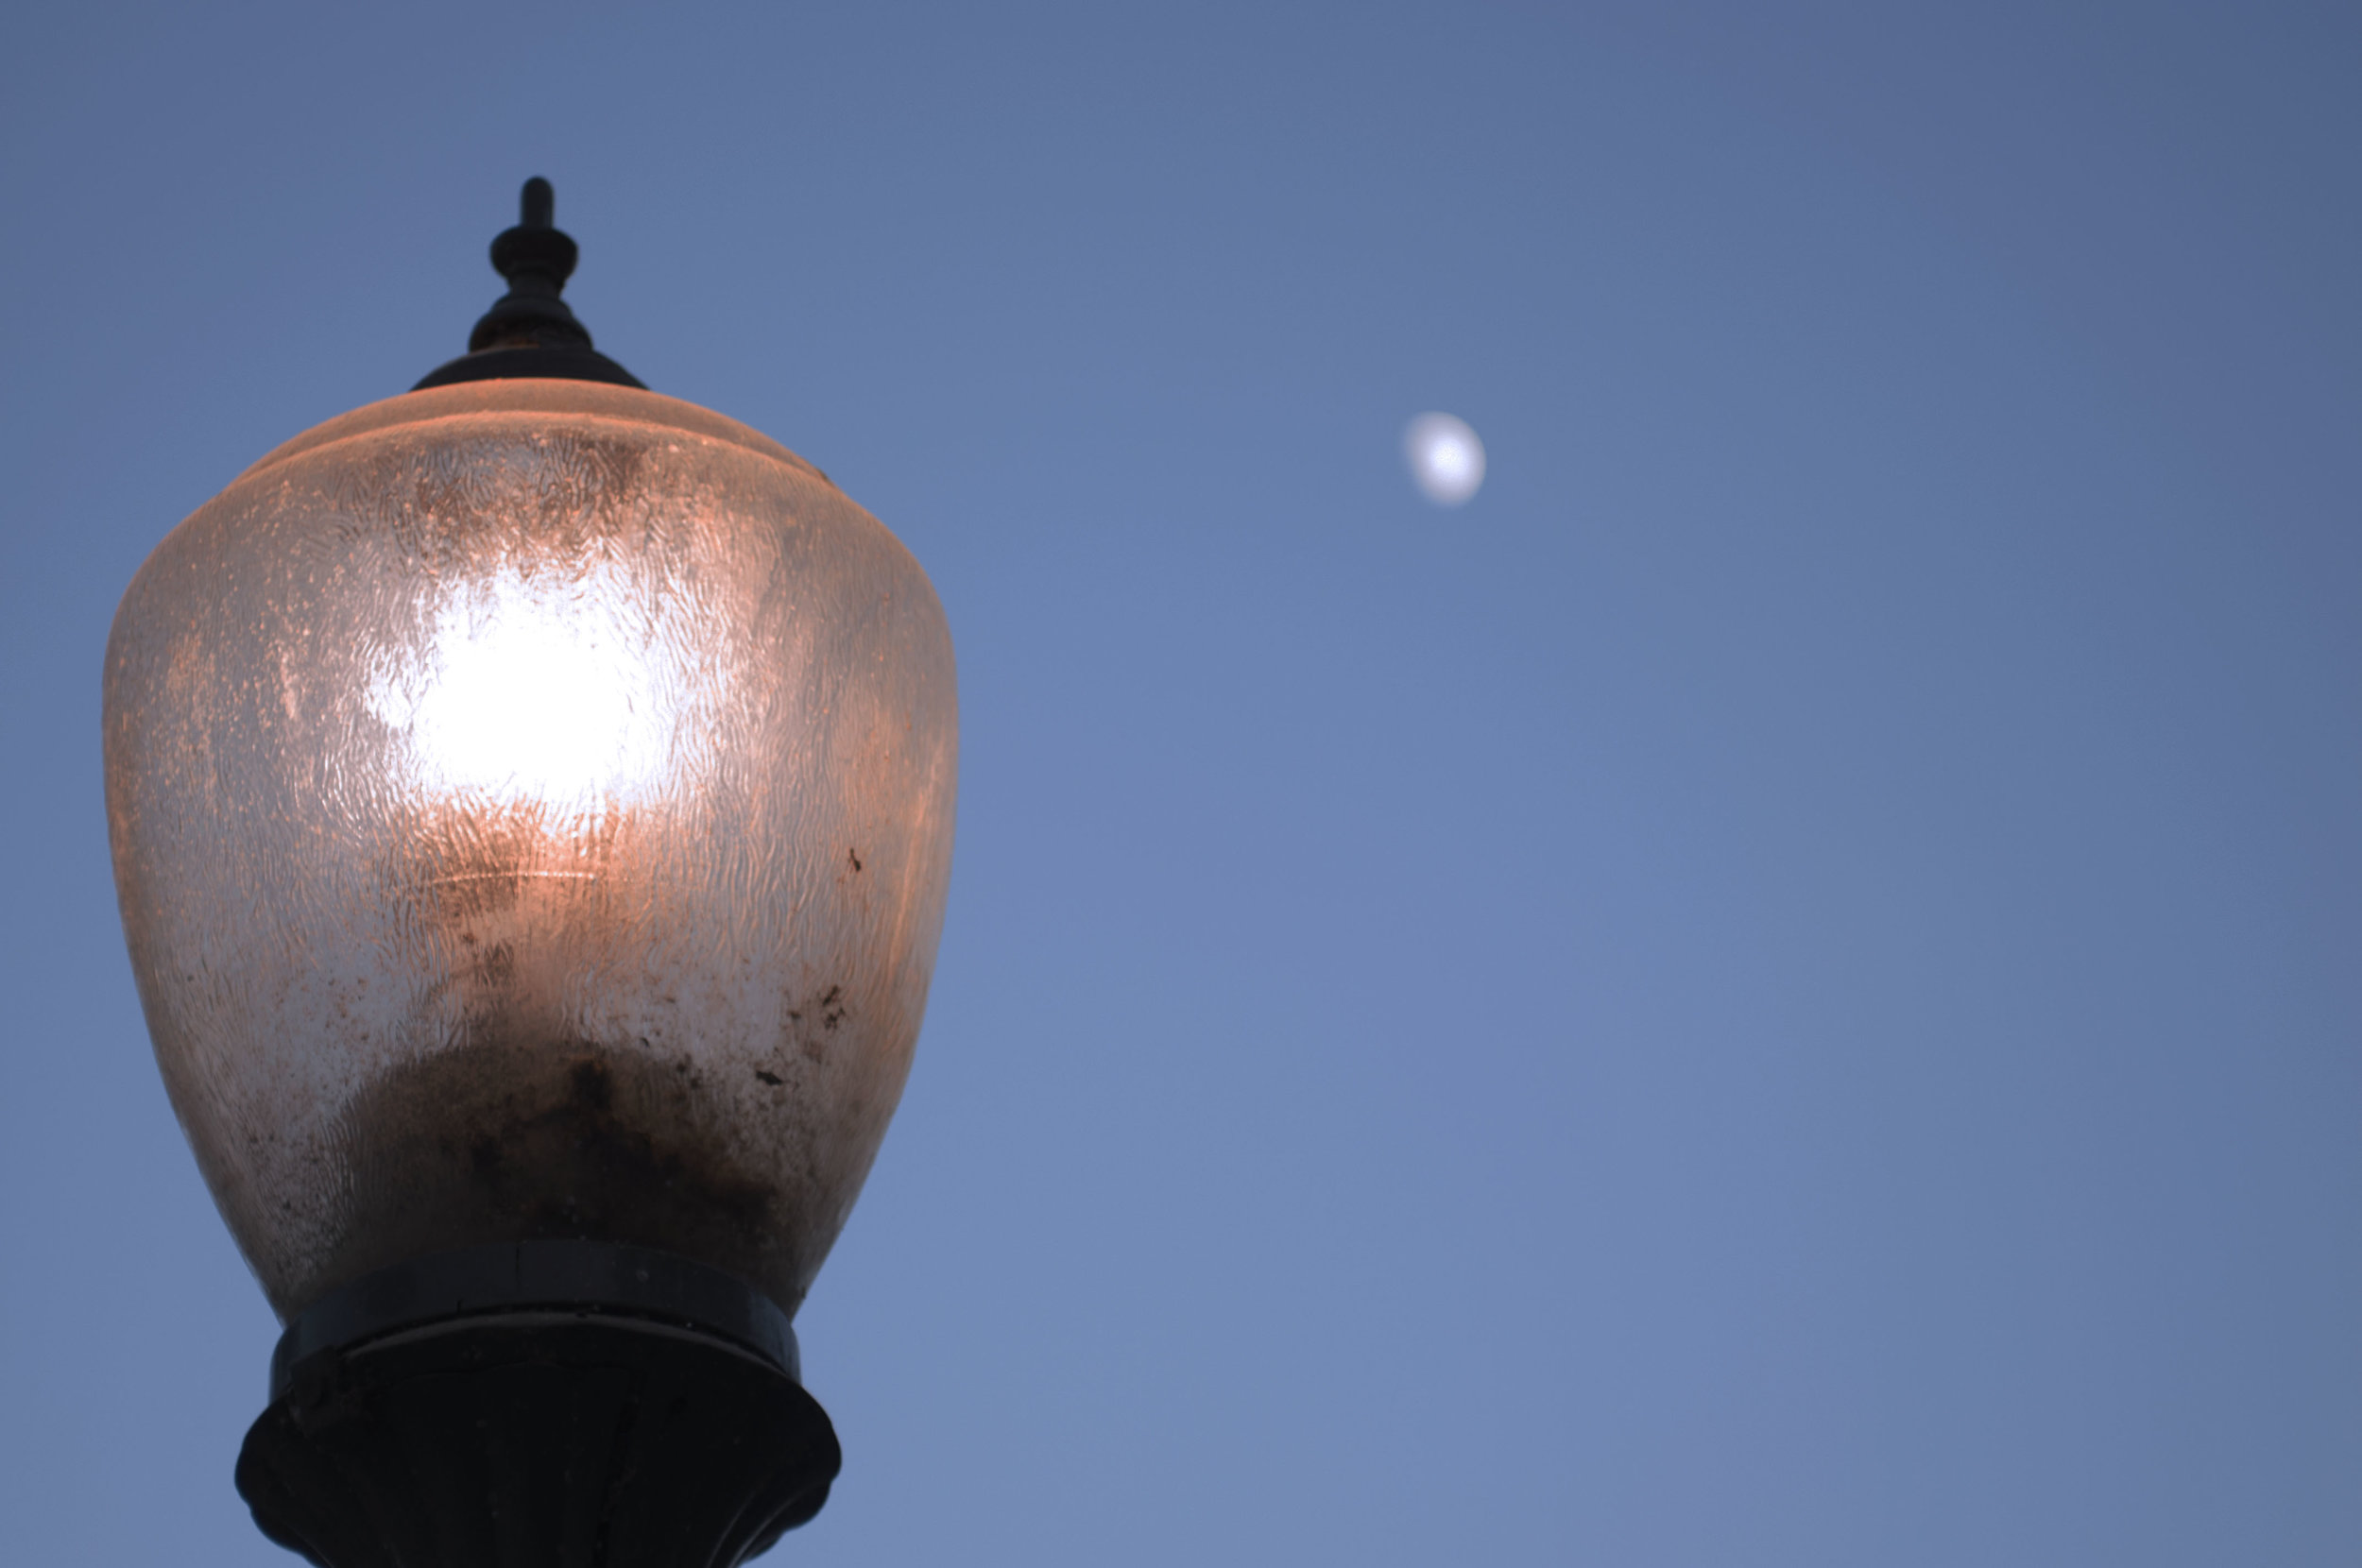 Lamp and Moon.jpg